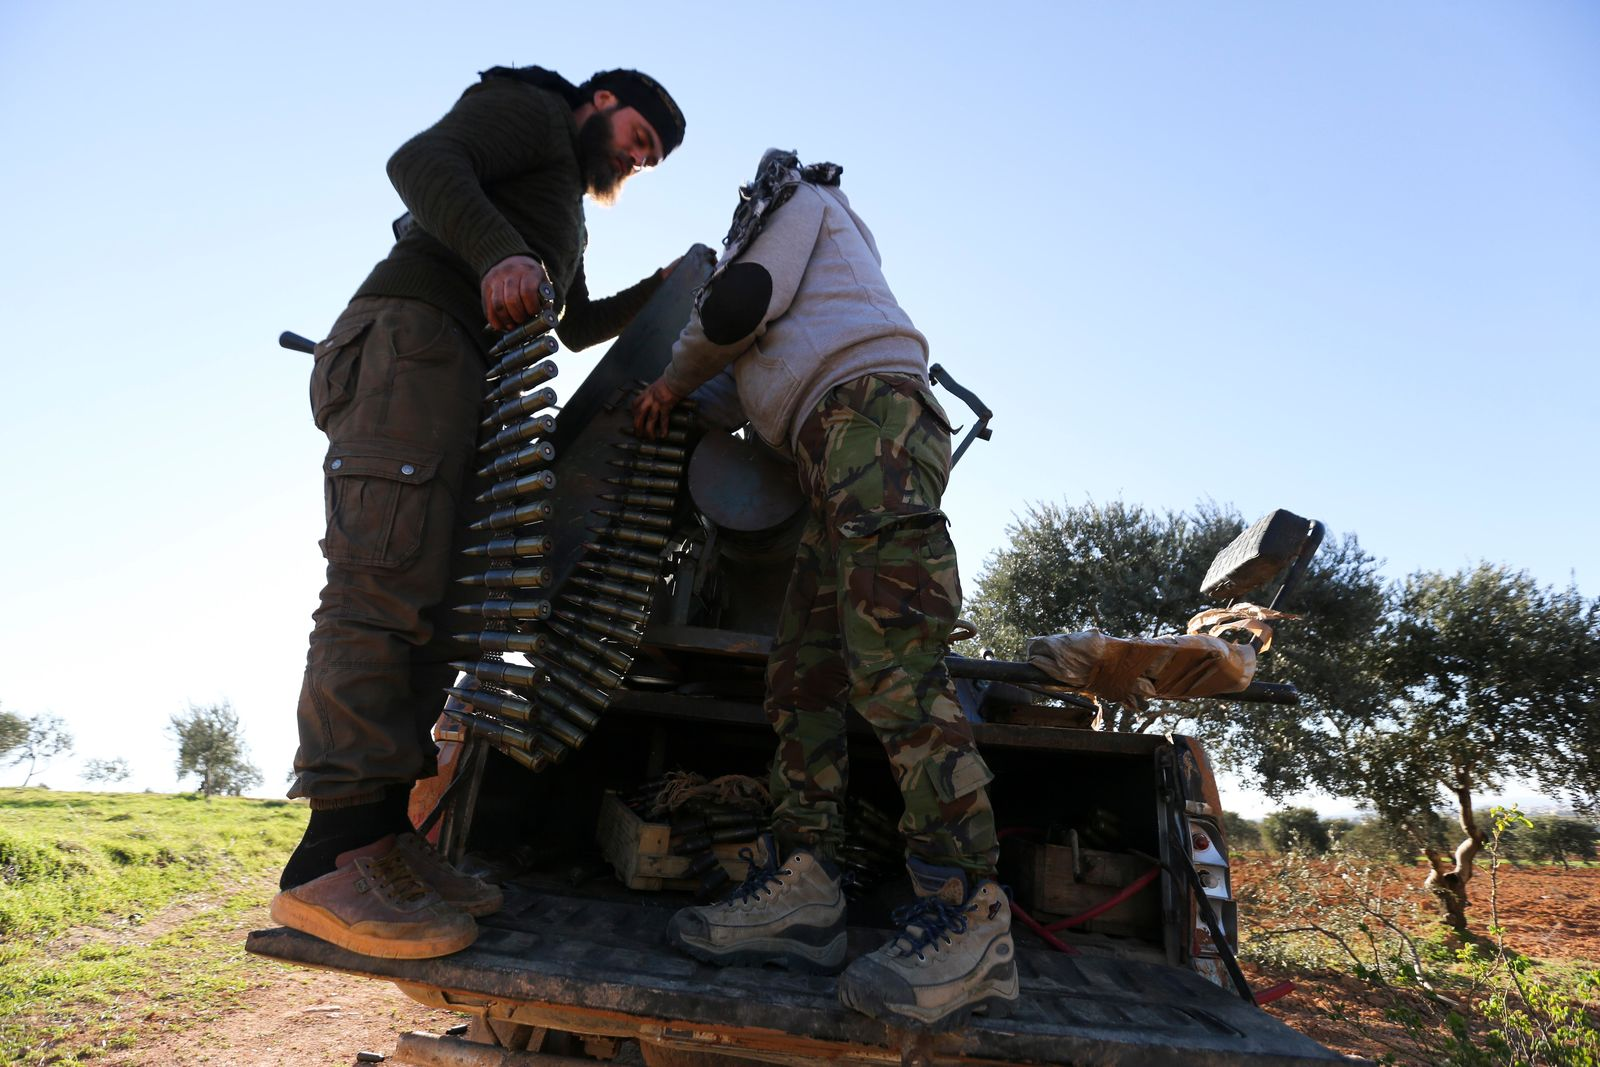 Turkish backed Syrian fighters load ammunition at a frontline near the town of Saraqib in Idlib province, Syria, Wednesday, Feb. 26, 2020. Syrian government forces have captured dozens of villages, including major rebel strongholds, over the past few days{ }in the last opposition-held area in the country's northwest. (AP Photo/Ghaith Alsayed)